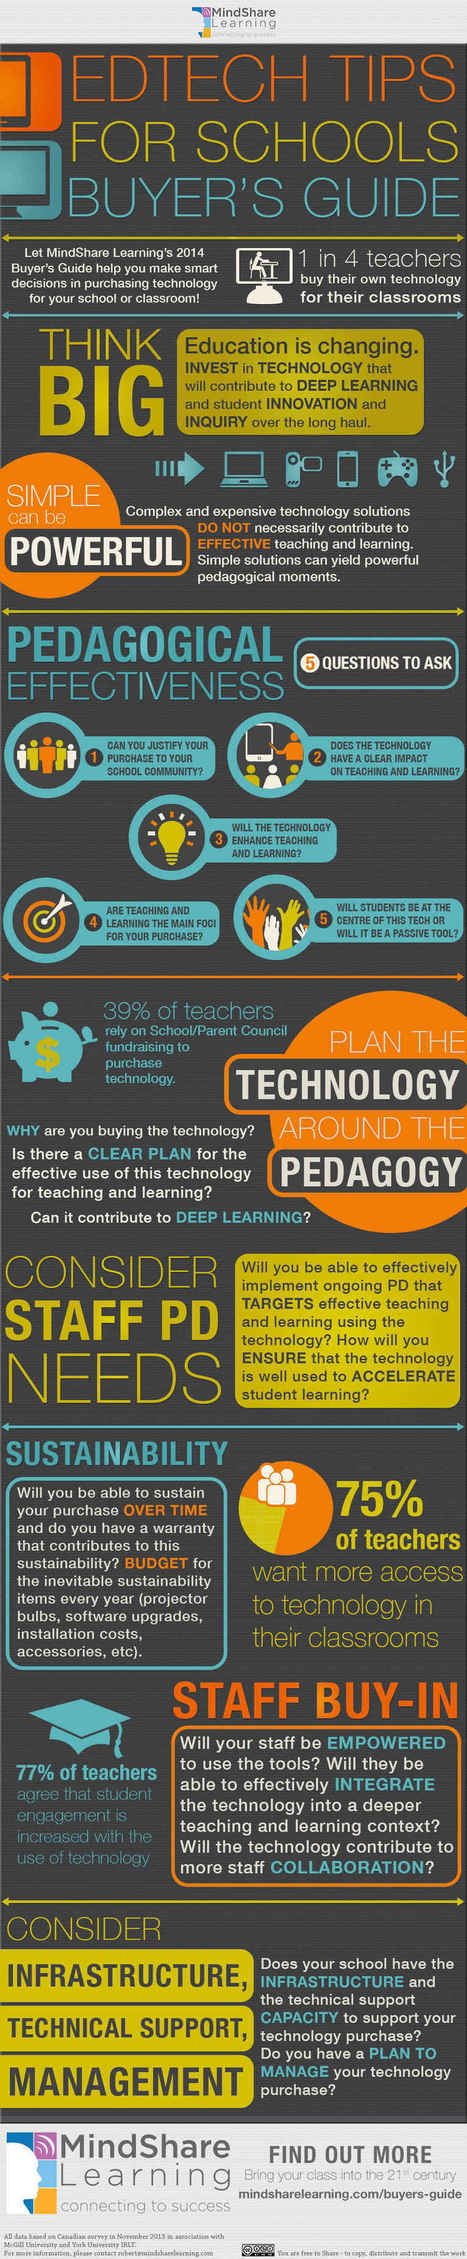 [Infographic] EdTech Tips for Schools Buyer's Guide 2014 - EdTechReview™ (ETR) | EdTechReview | Scoop.it